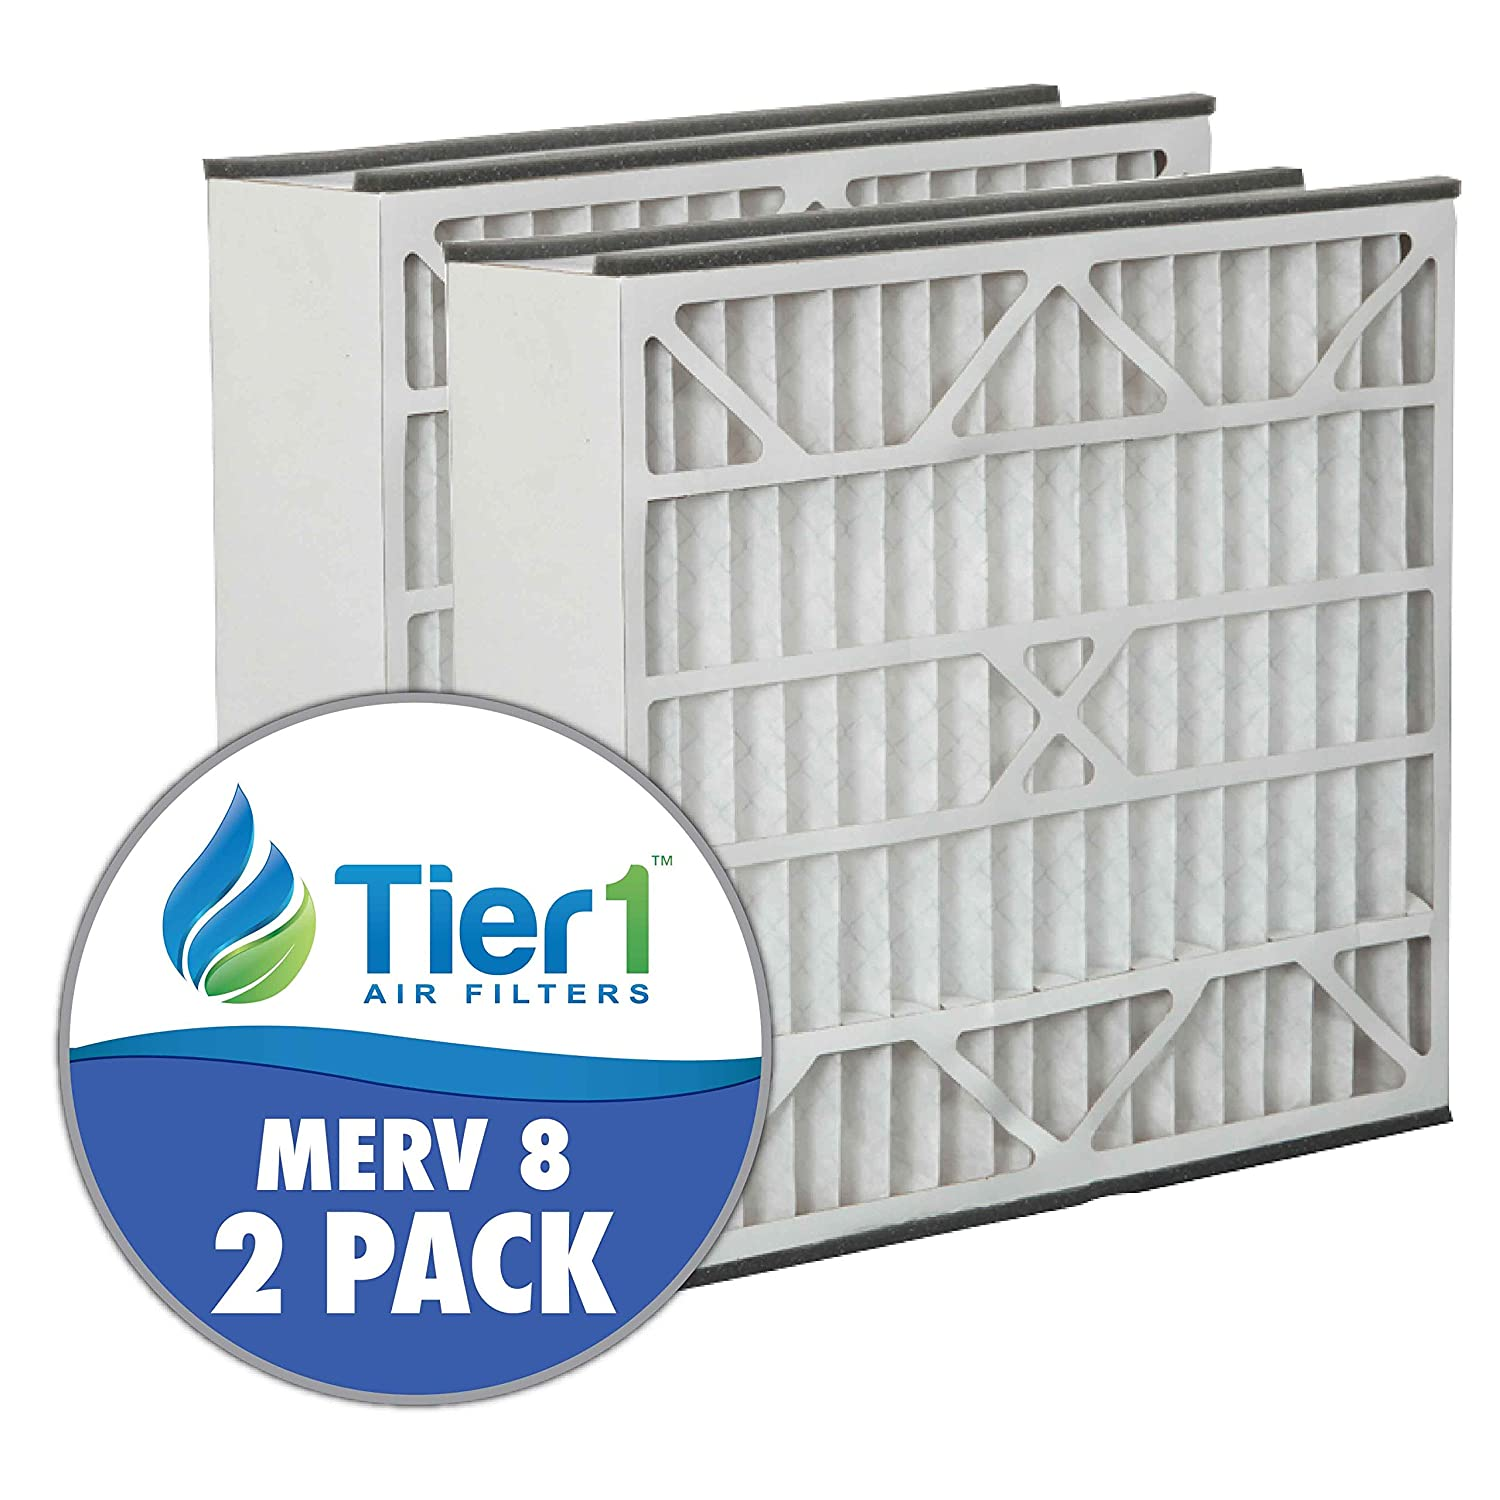 Skuttle 20x25x5 Merv 8 Replacement AC Furnace Air Filter (2 Pack ...